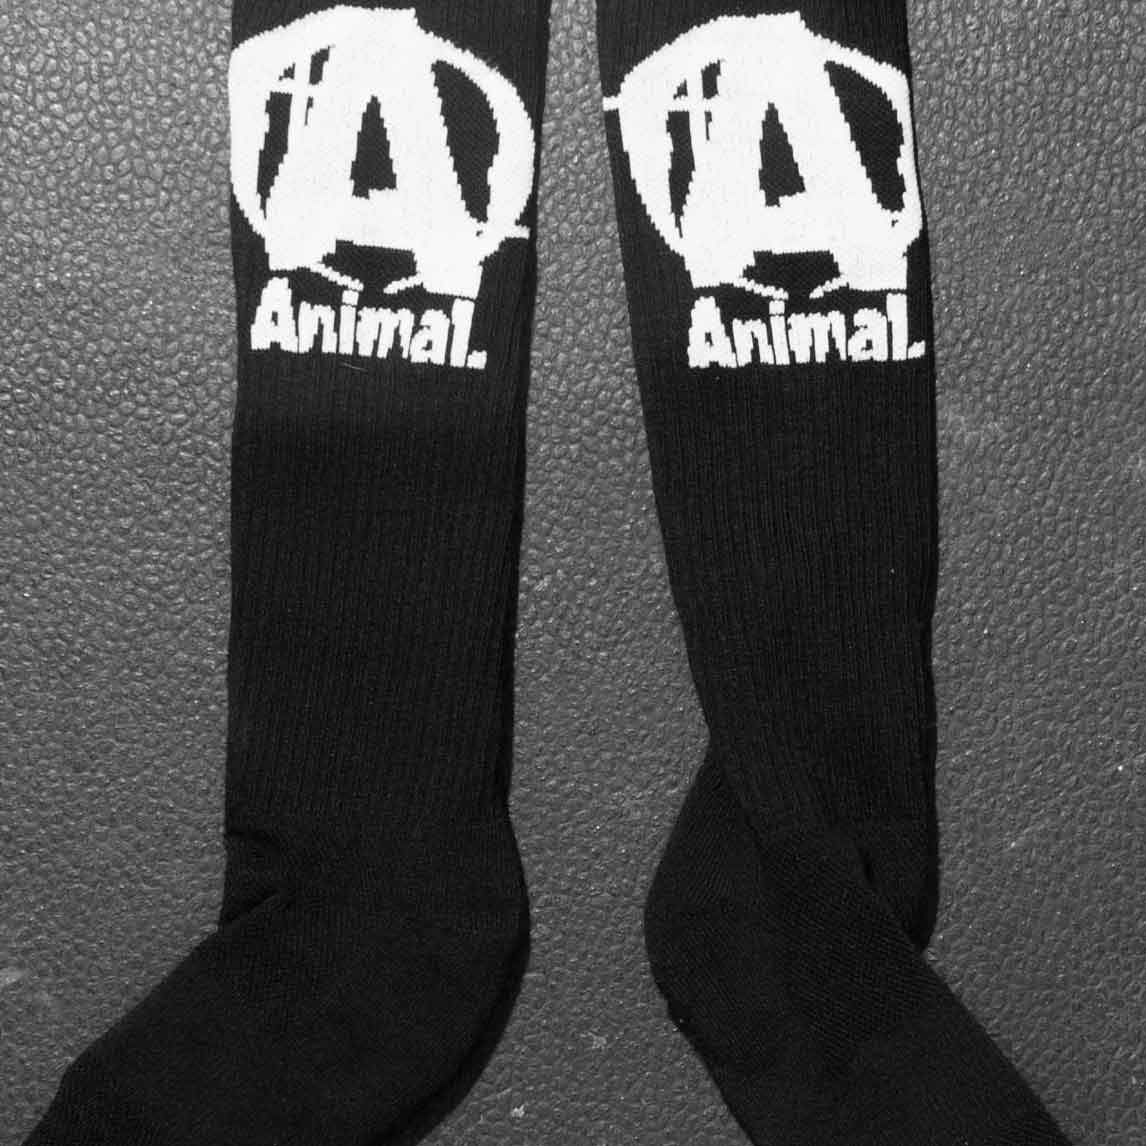 Animal Socks Fitness Accessories and Apparel Universal  (1528204689451)